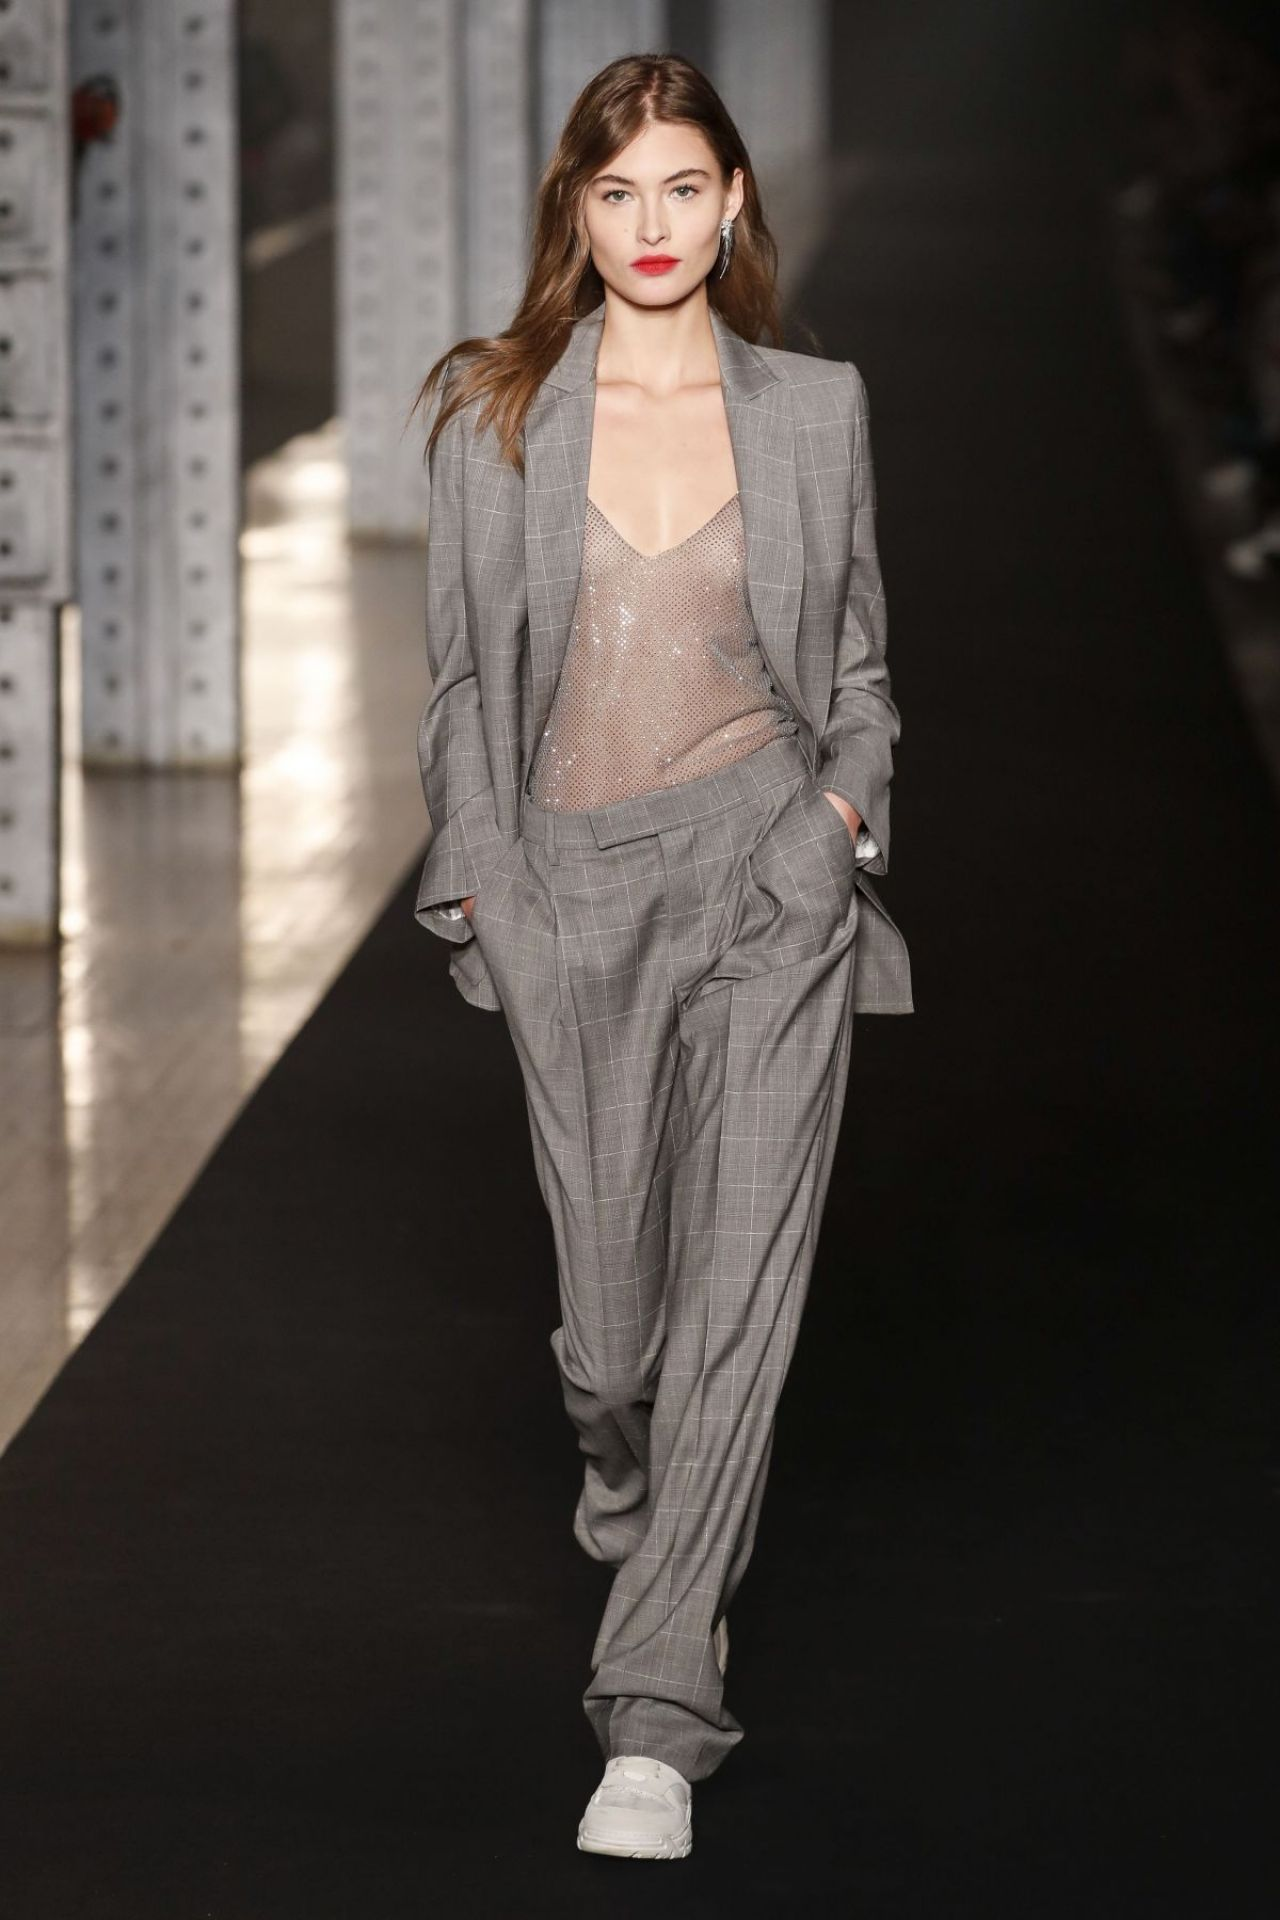 859d001be4a1 Grace Elizabeth Walks Zadig   Voltaire Fashion Show in NYC 02 11 2019